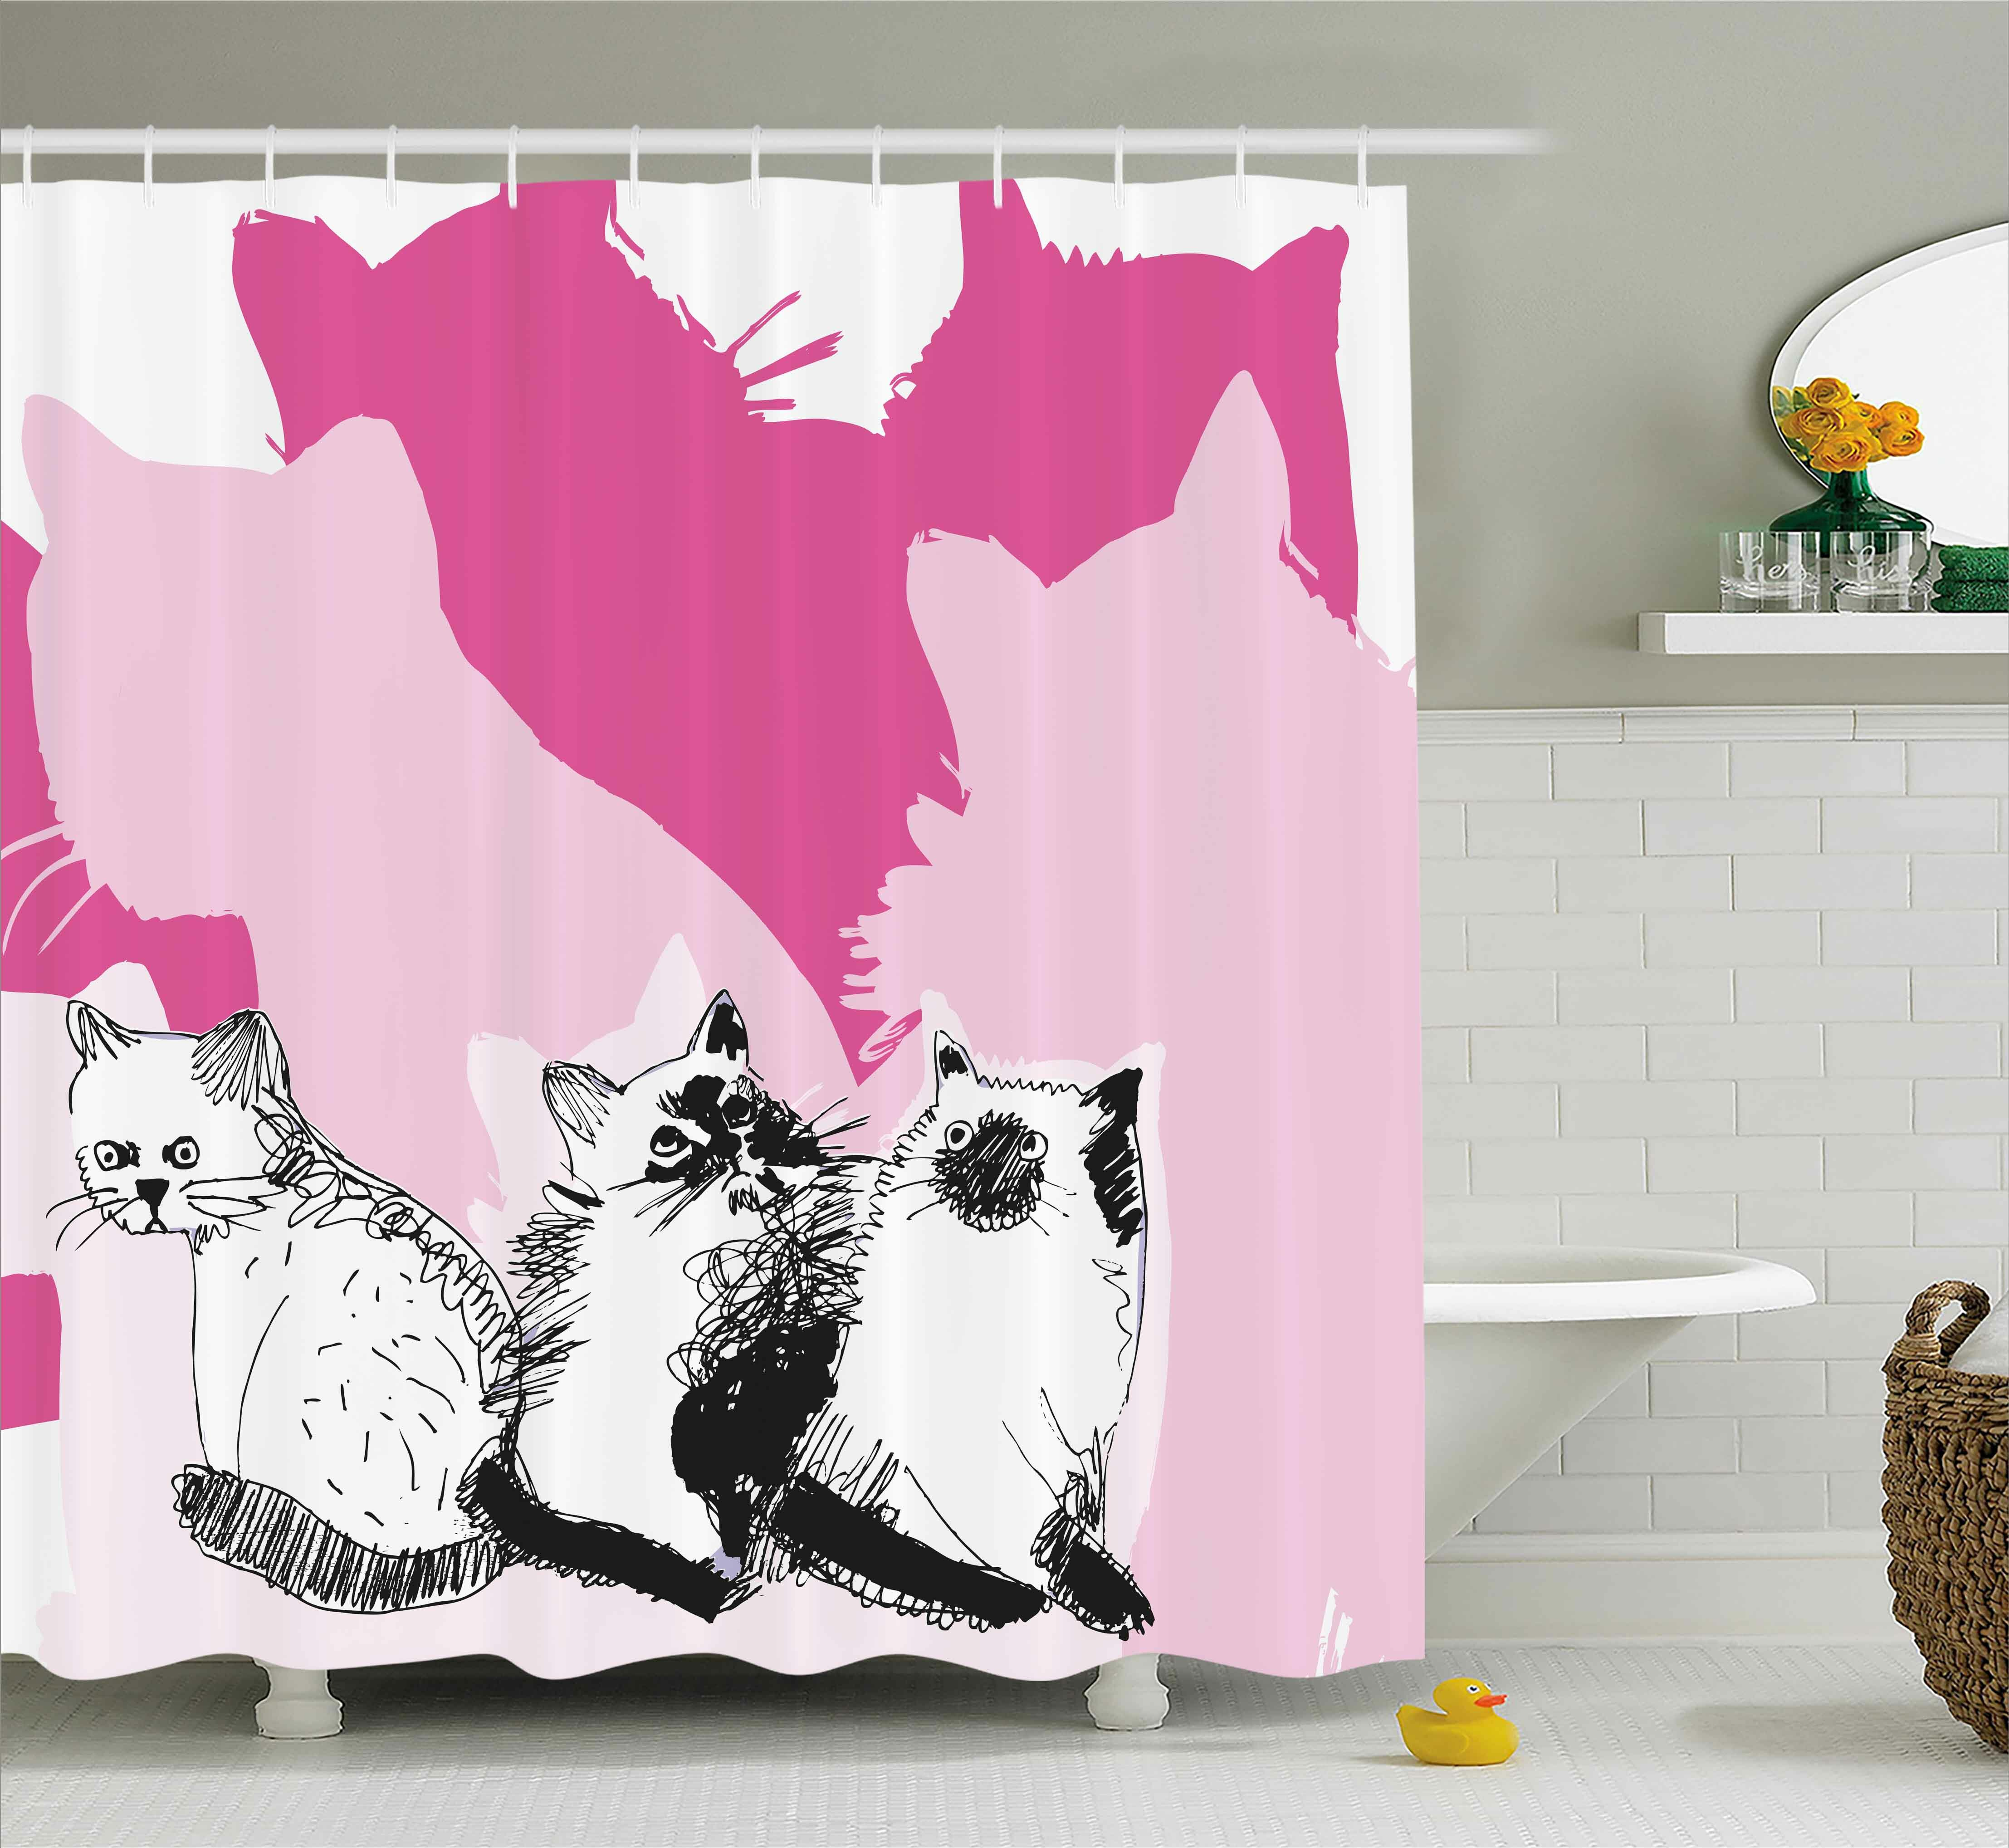 East Urban Home Kittens Shower Curtain